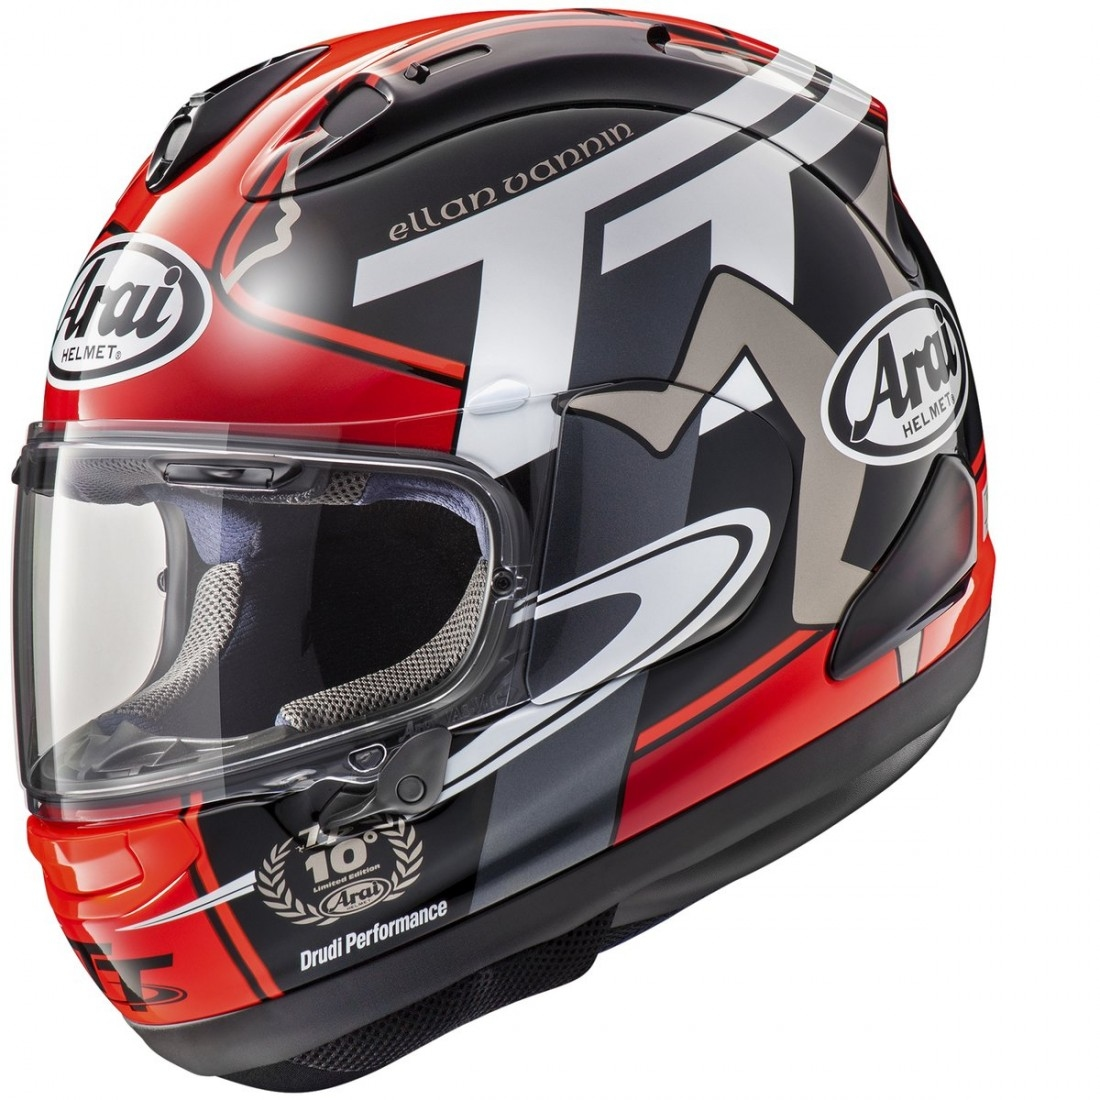 Comprar Casco Arai Tt Man 2019 En Amazon